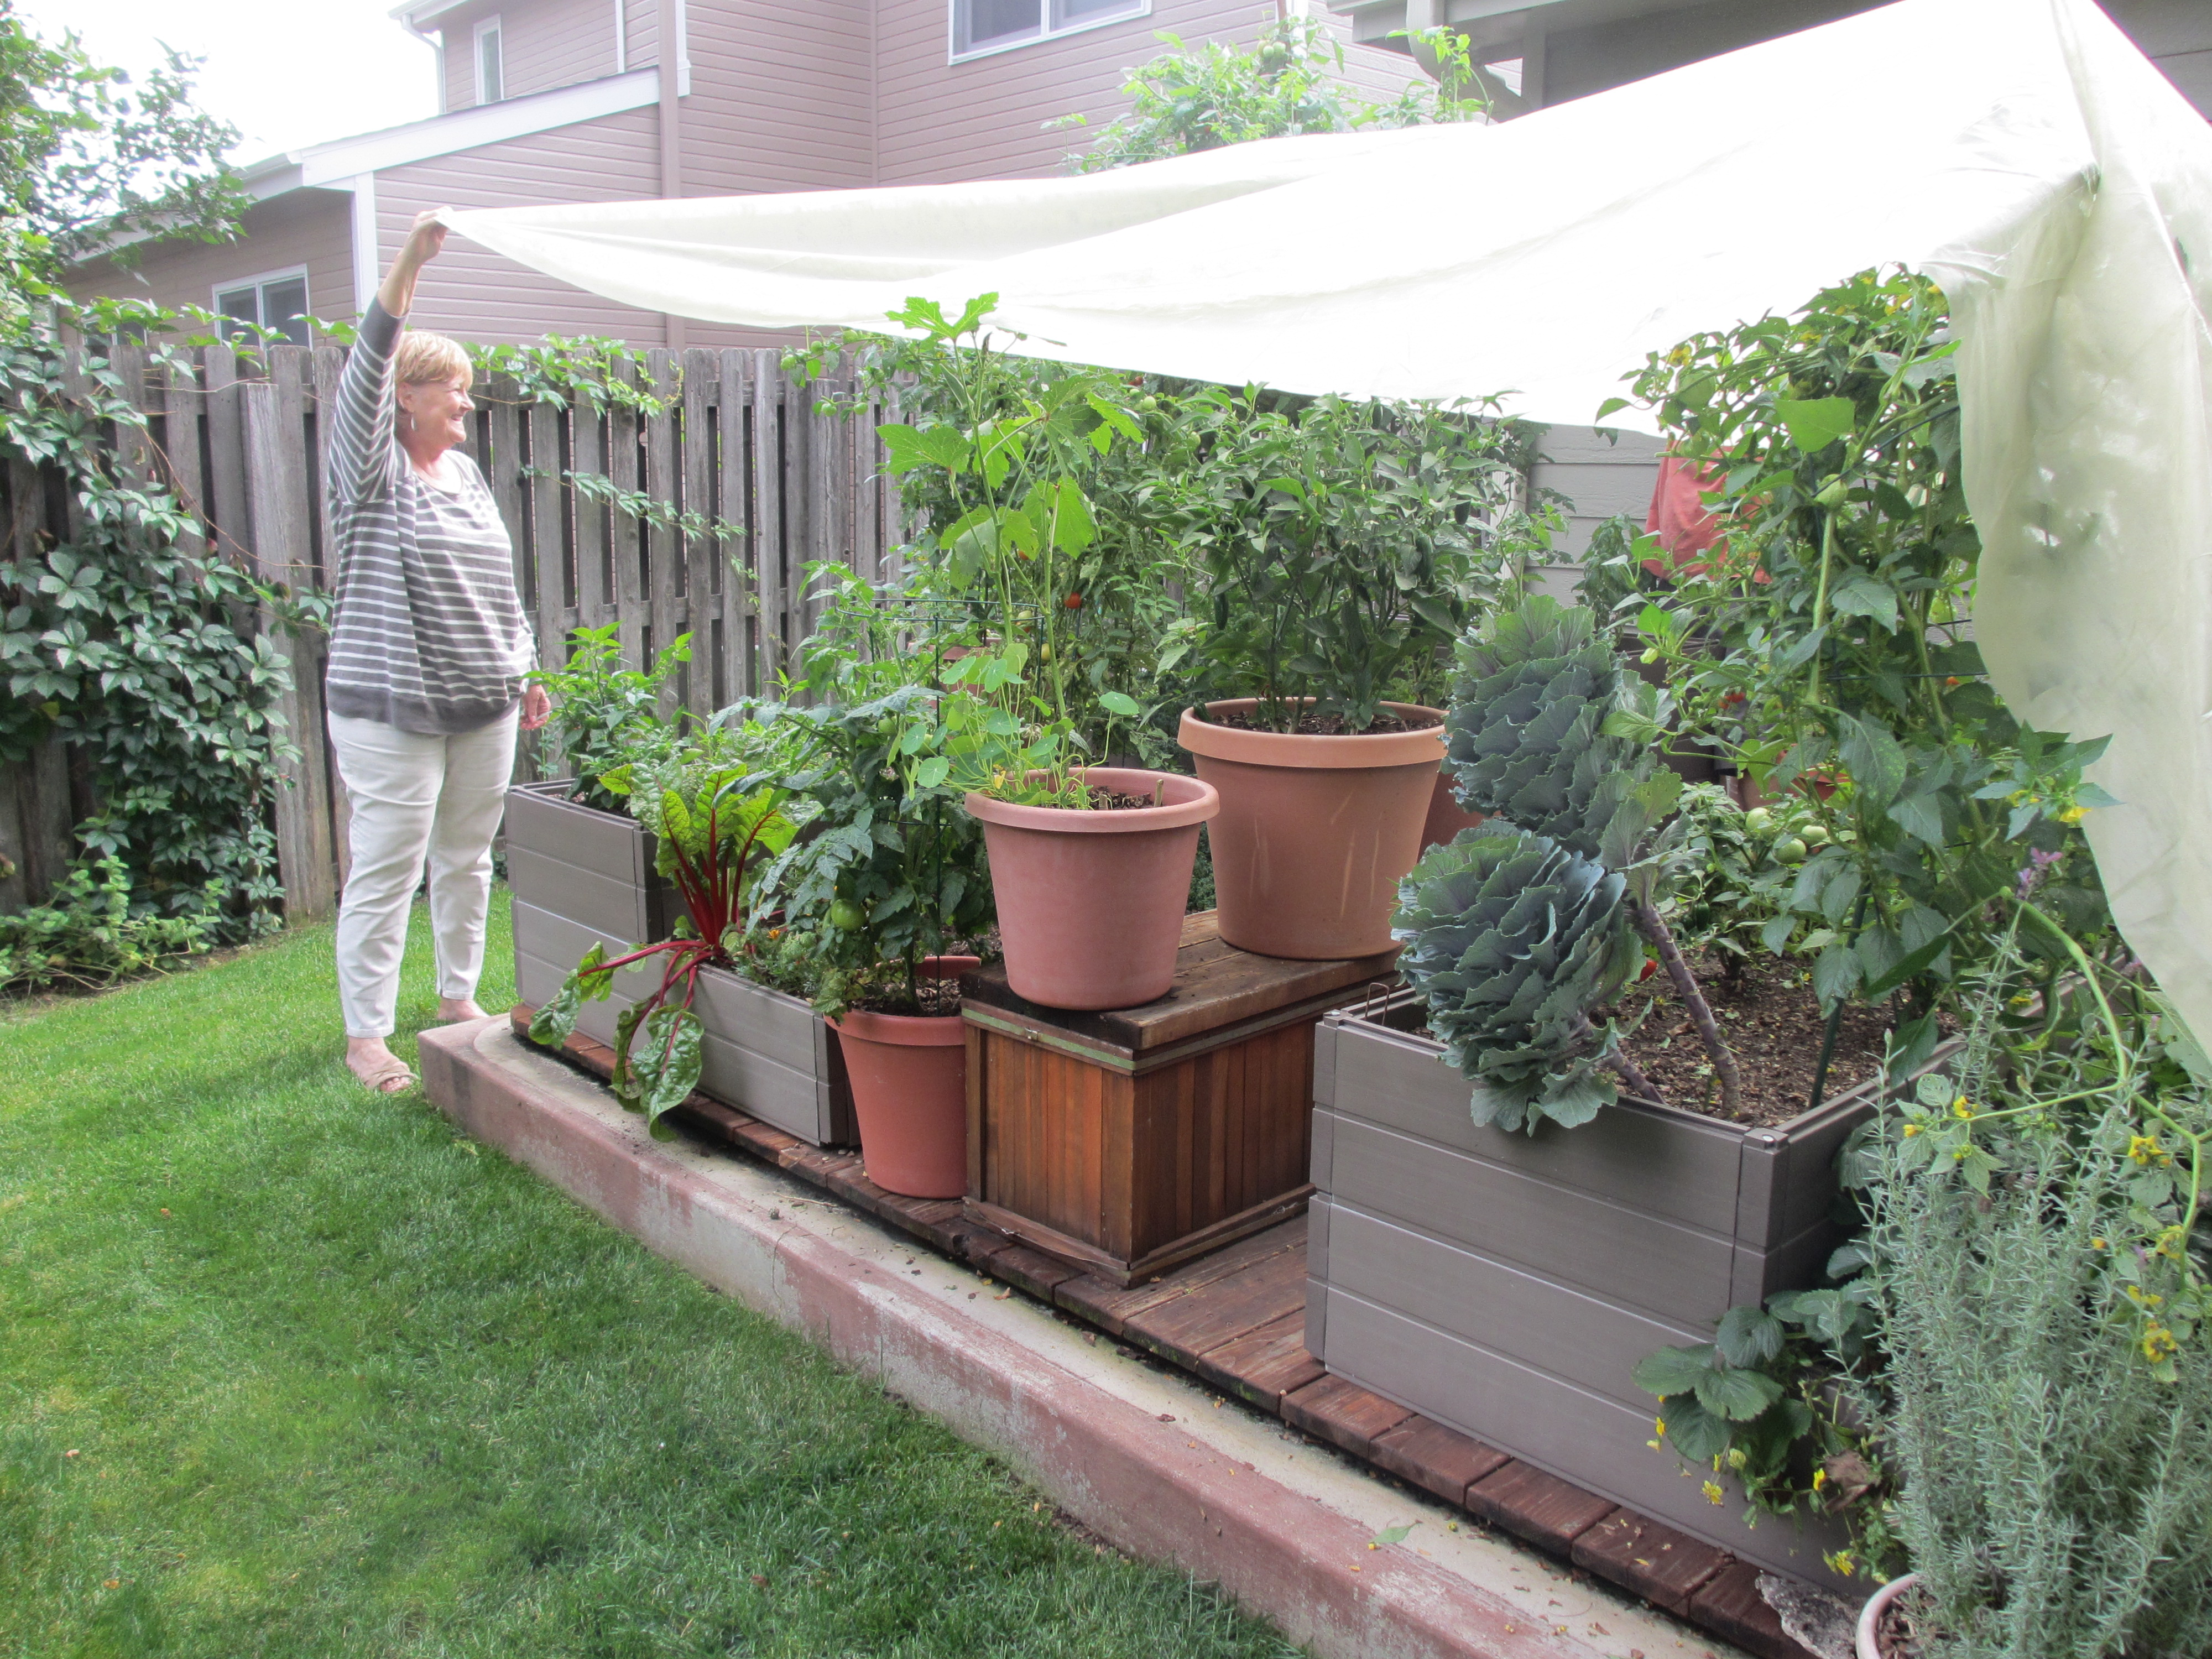 Garden Bed cover is 15 feet by 10 feet